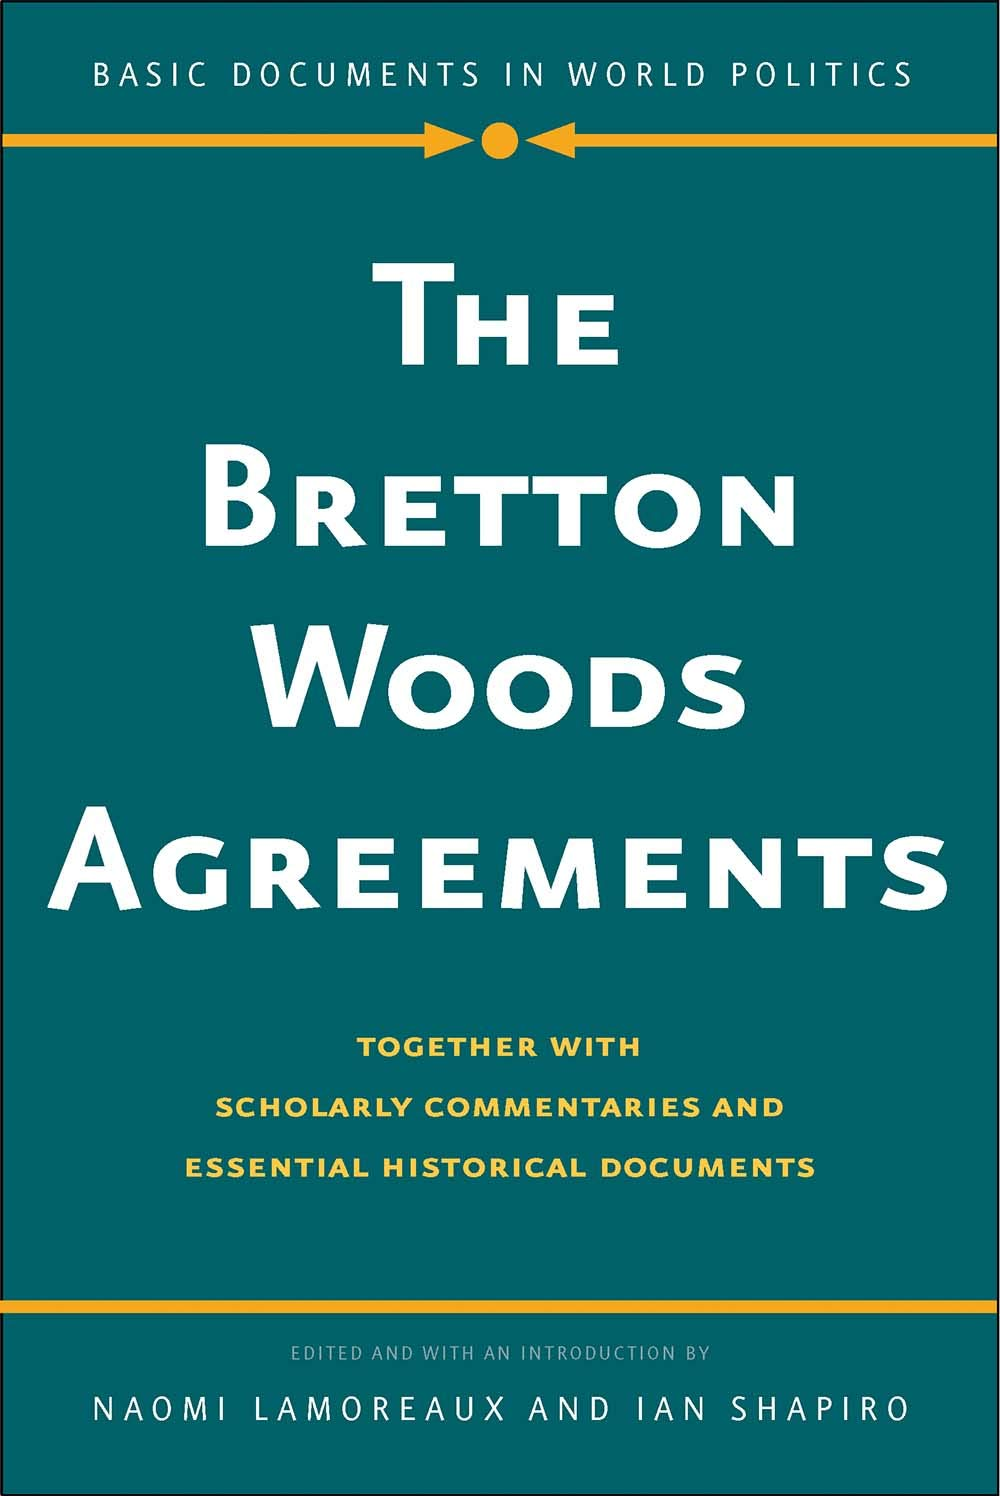 The Bretton Woods Agreements Together With Scholarly